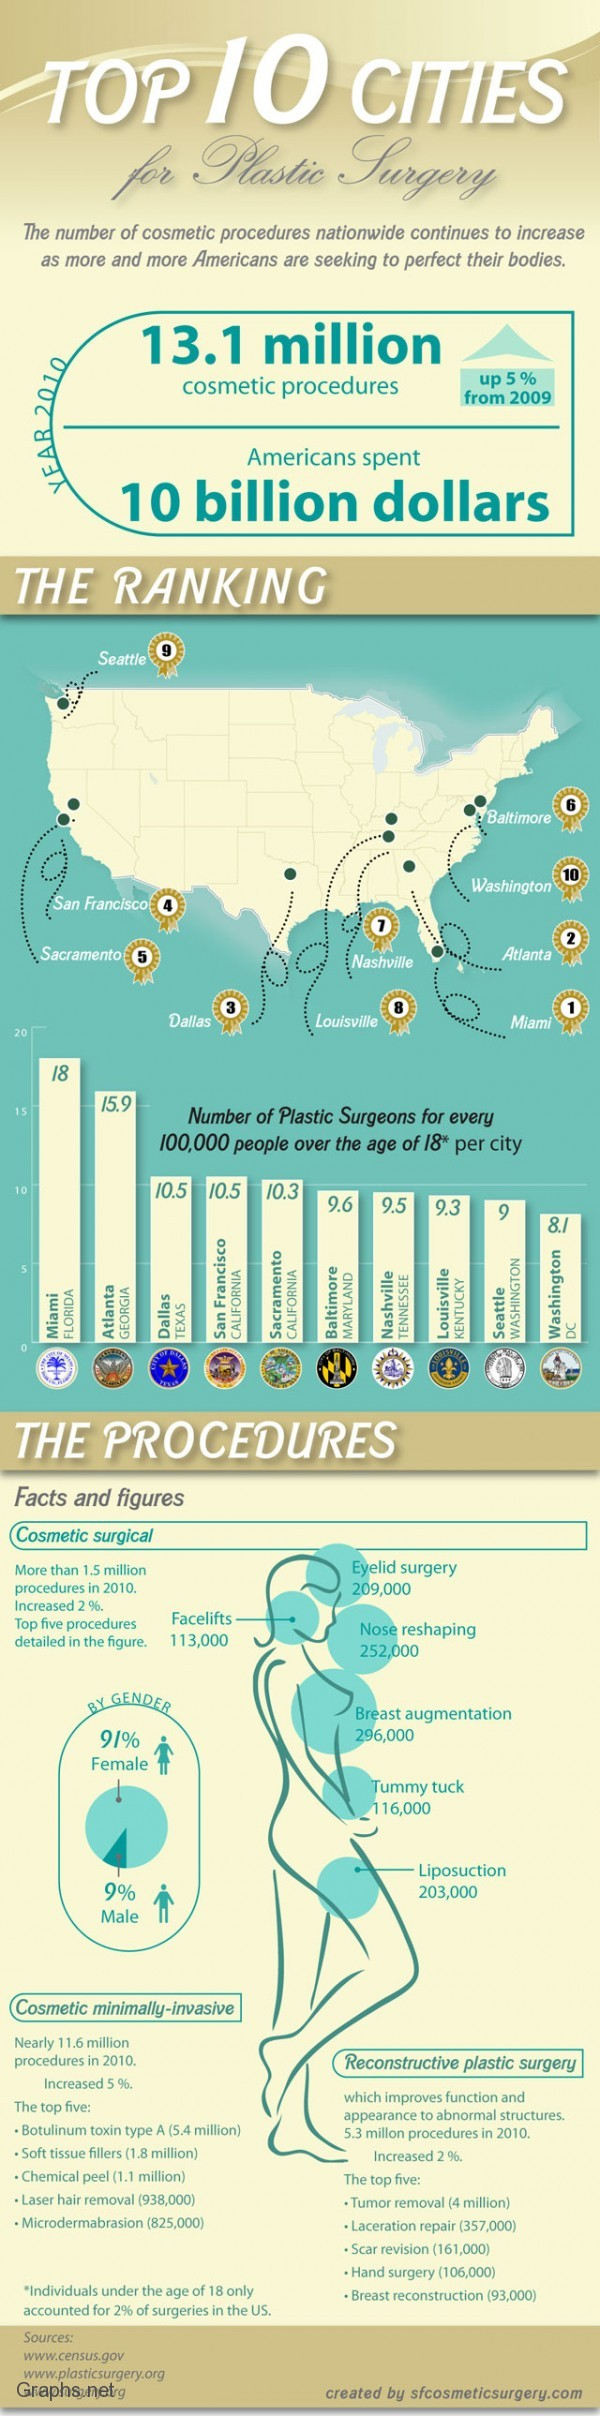 10 Most Popualr cities in US for Plastic Surgery